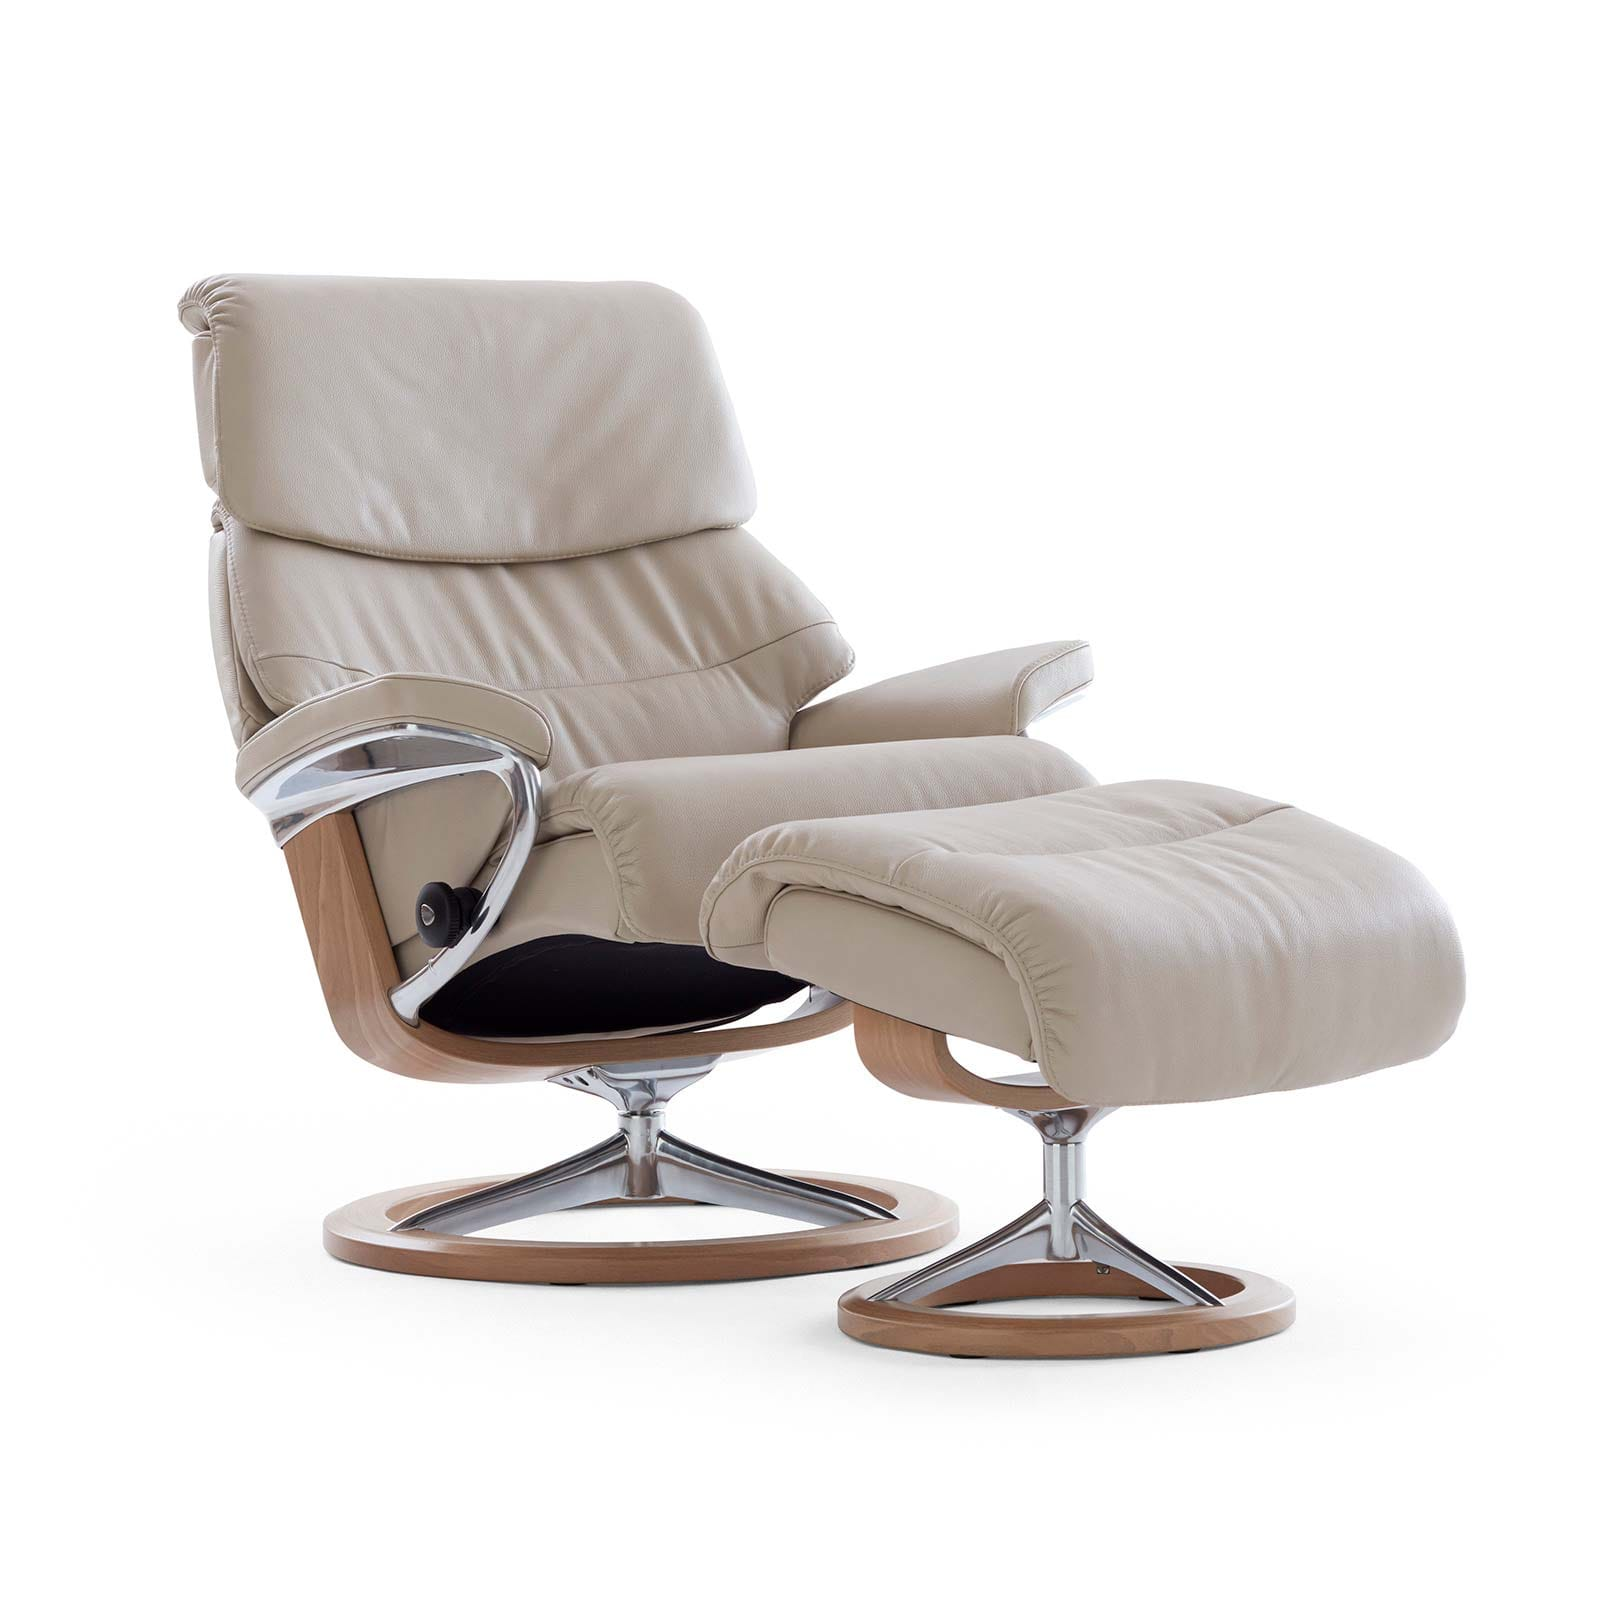 Sessel M Stressless Sessel Capri Light Grey Paloma Signature Natur Ohne Hocker M